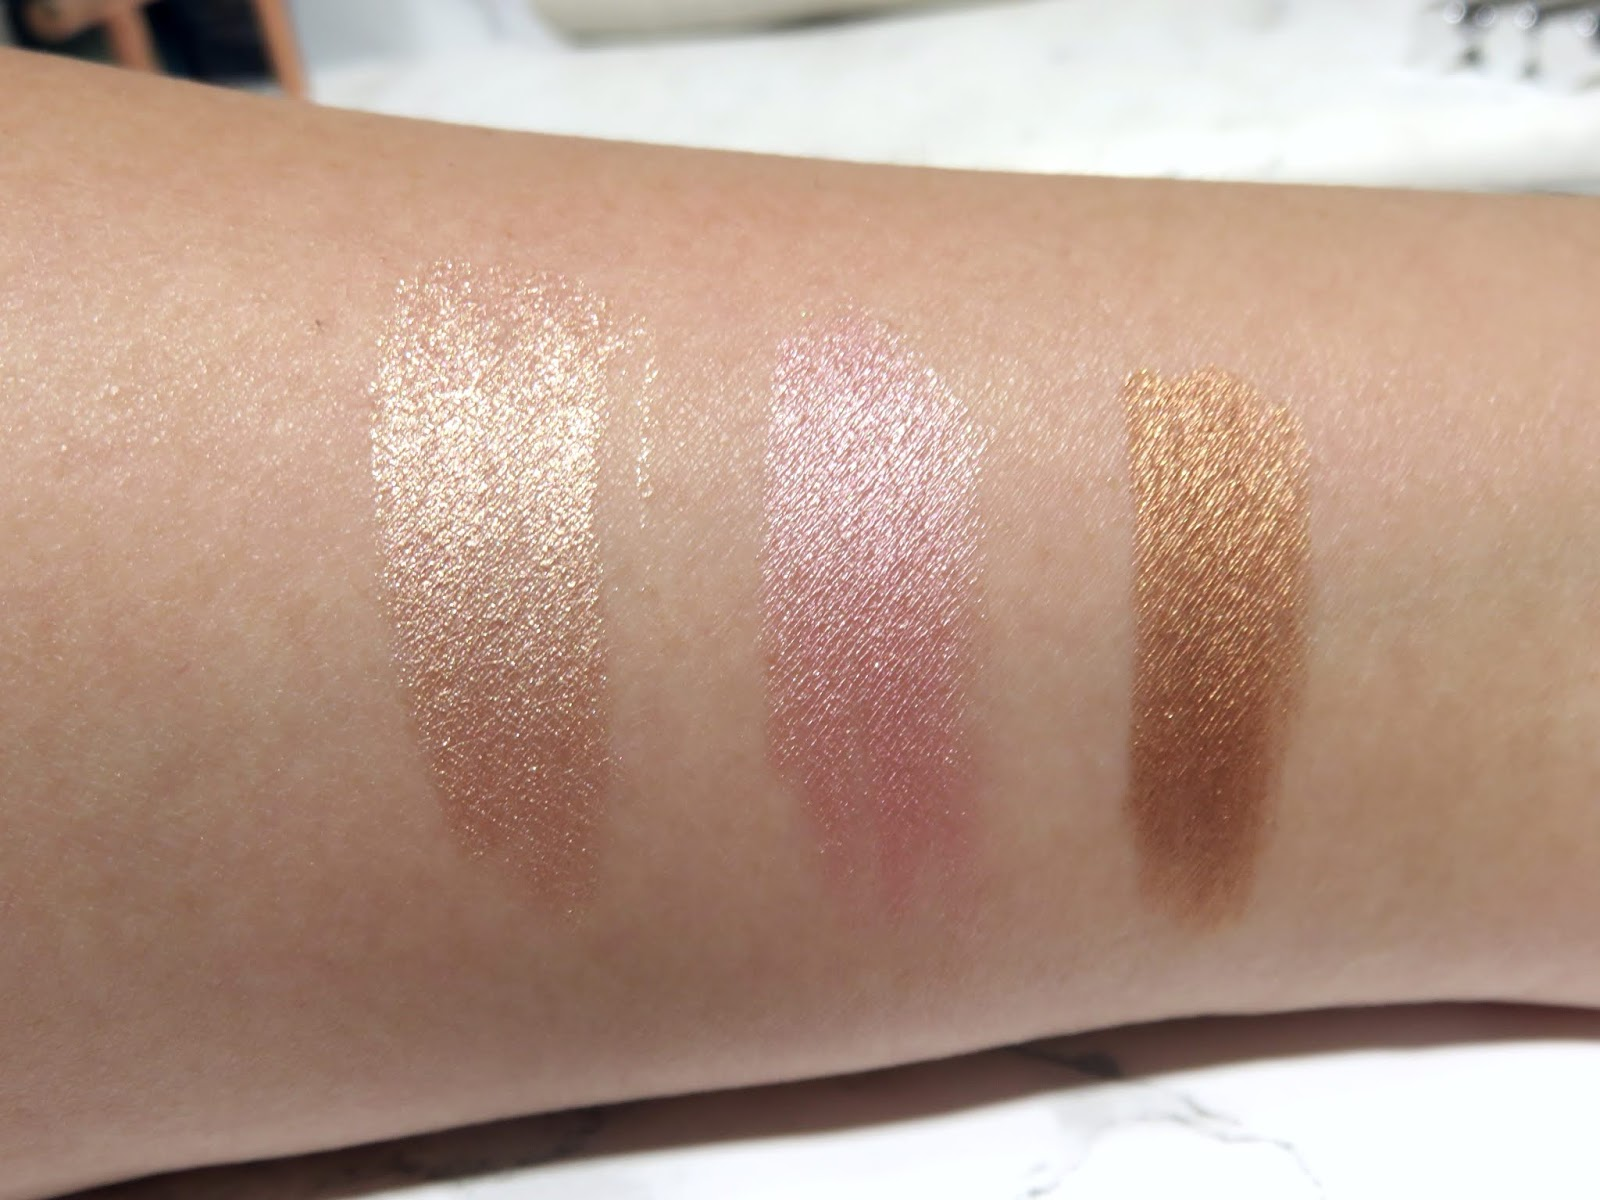 By Terry Ombre Blackstar Cream Eyeshadow Pen Review and Swatches